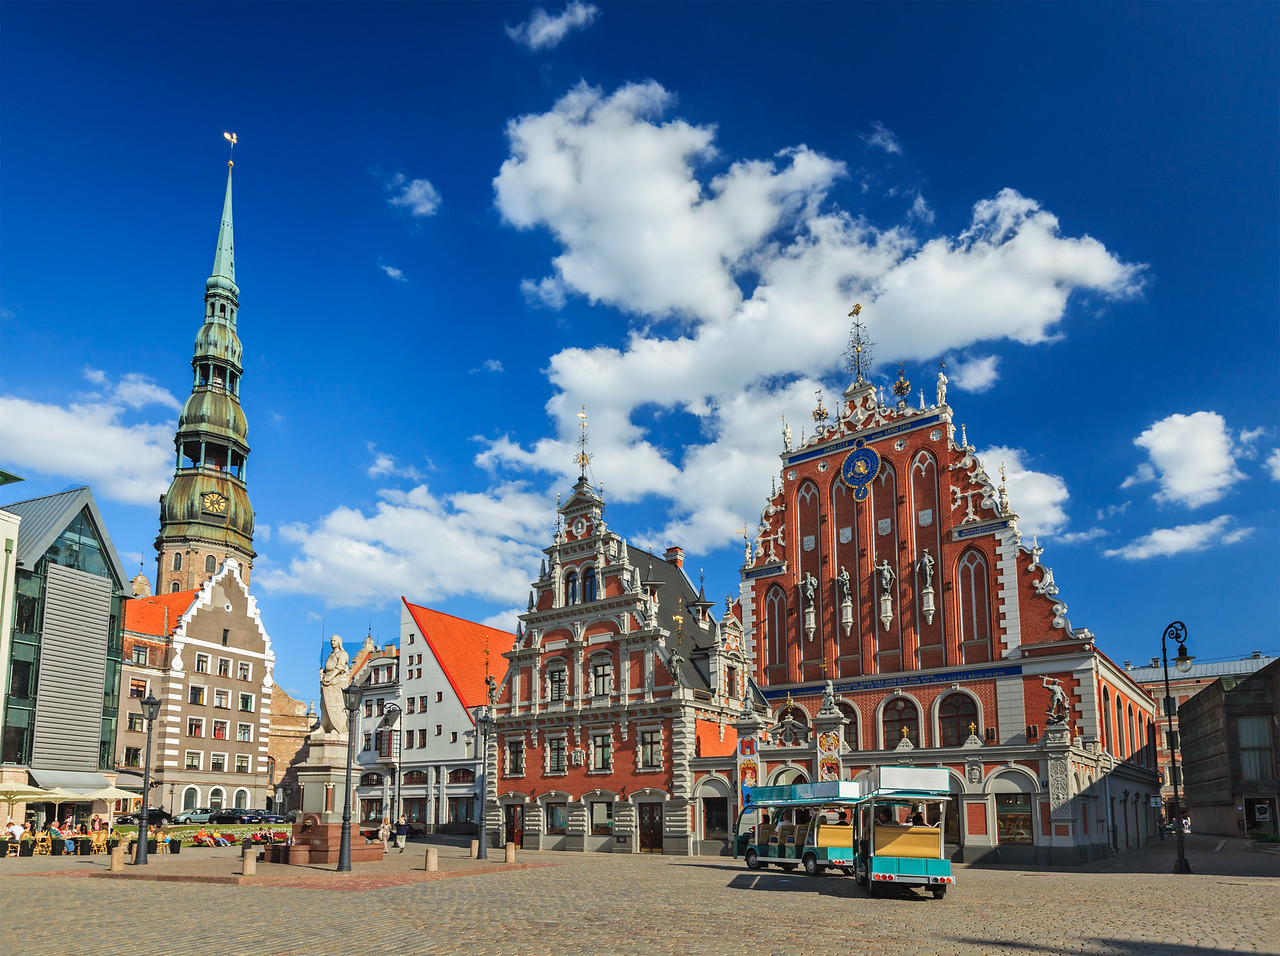 Riga Town Hall Square, House of the Blackheads and St. Peter's Church, Riga, Latvia